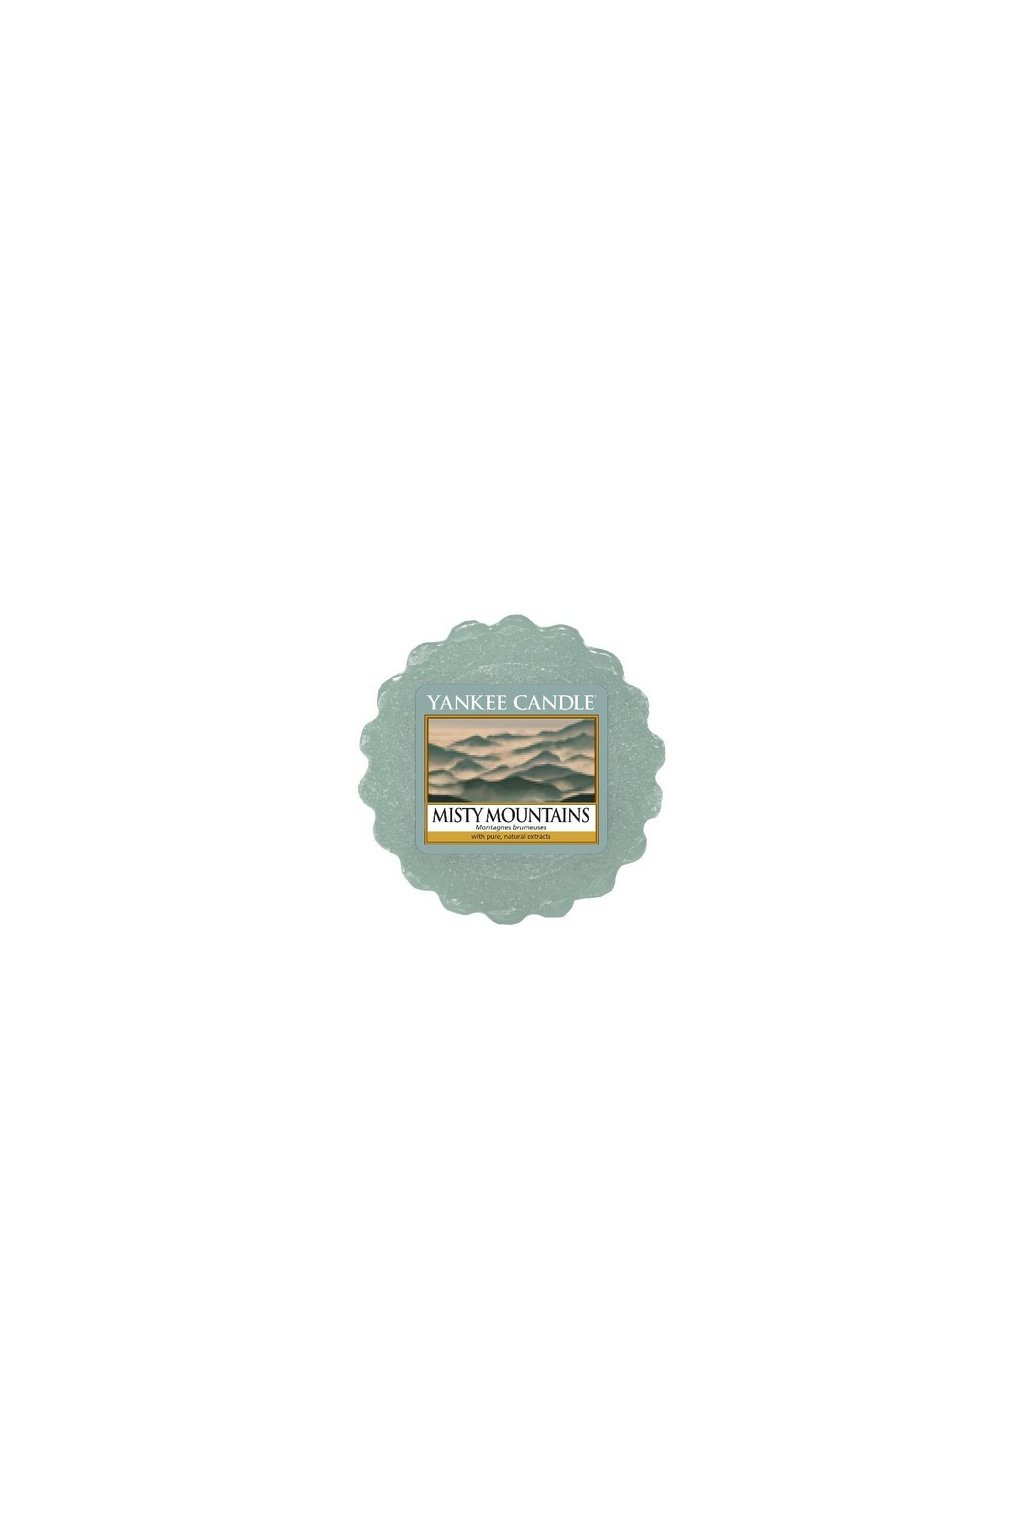 Yankee Candle Misty Mountains 22g